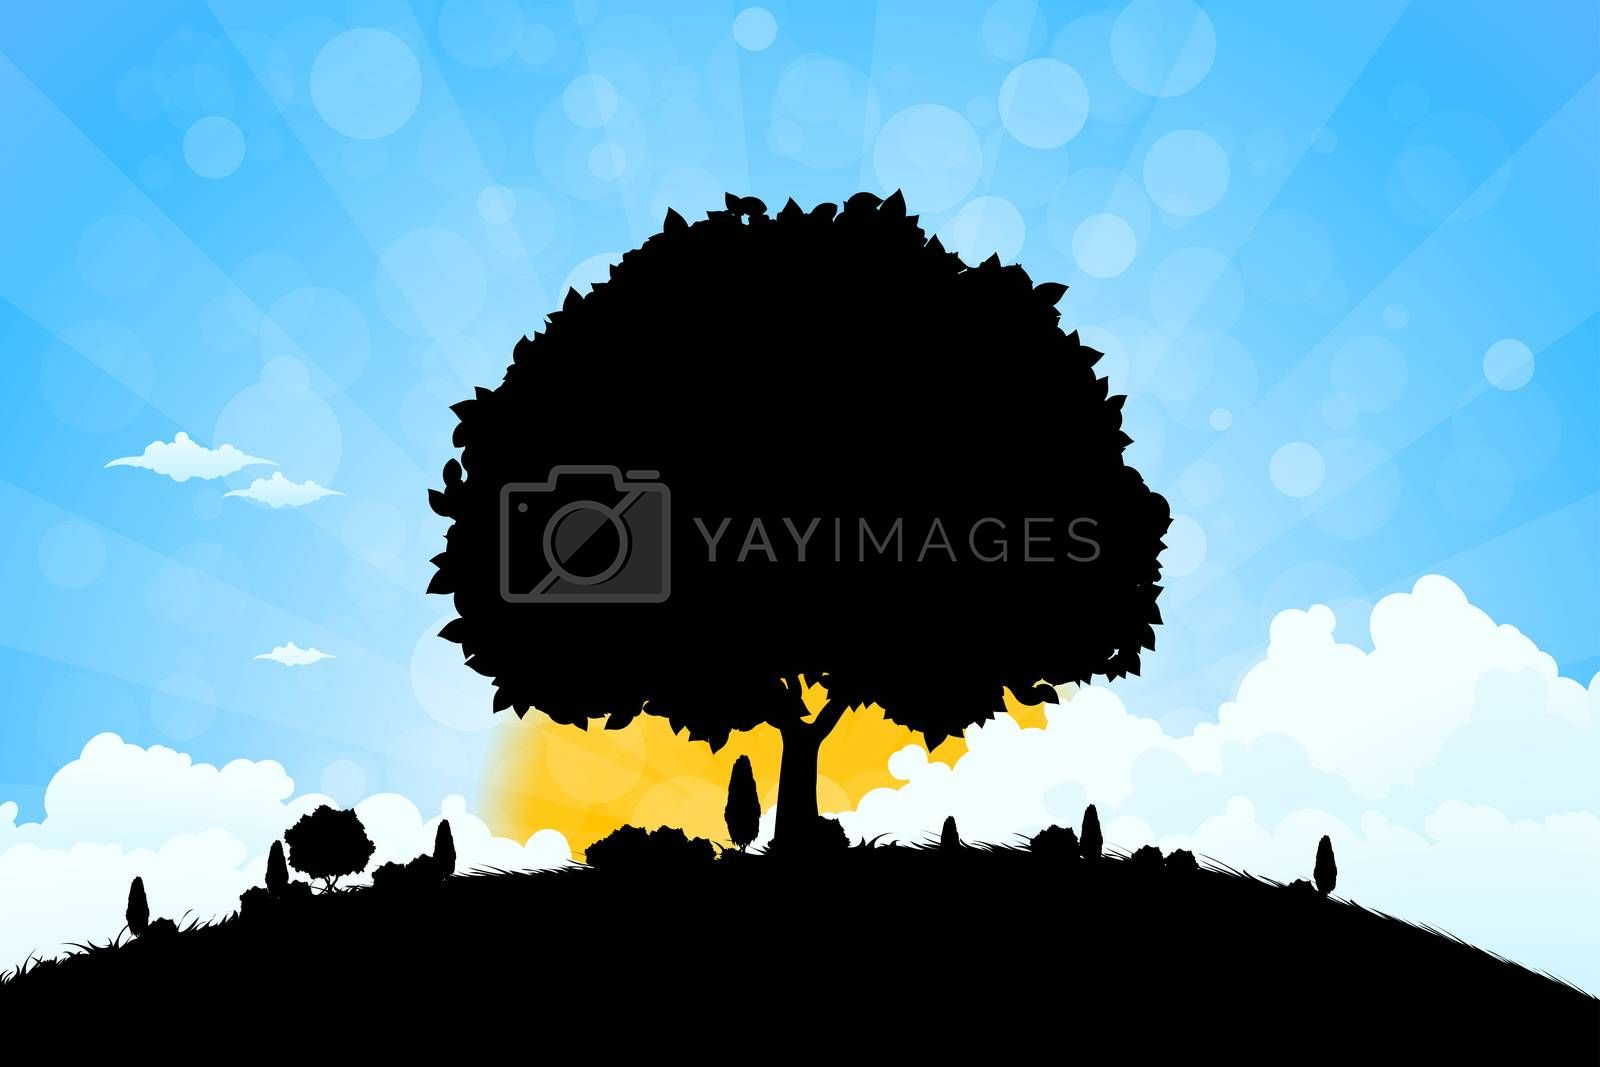 Landscape with Trees by WaD